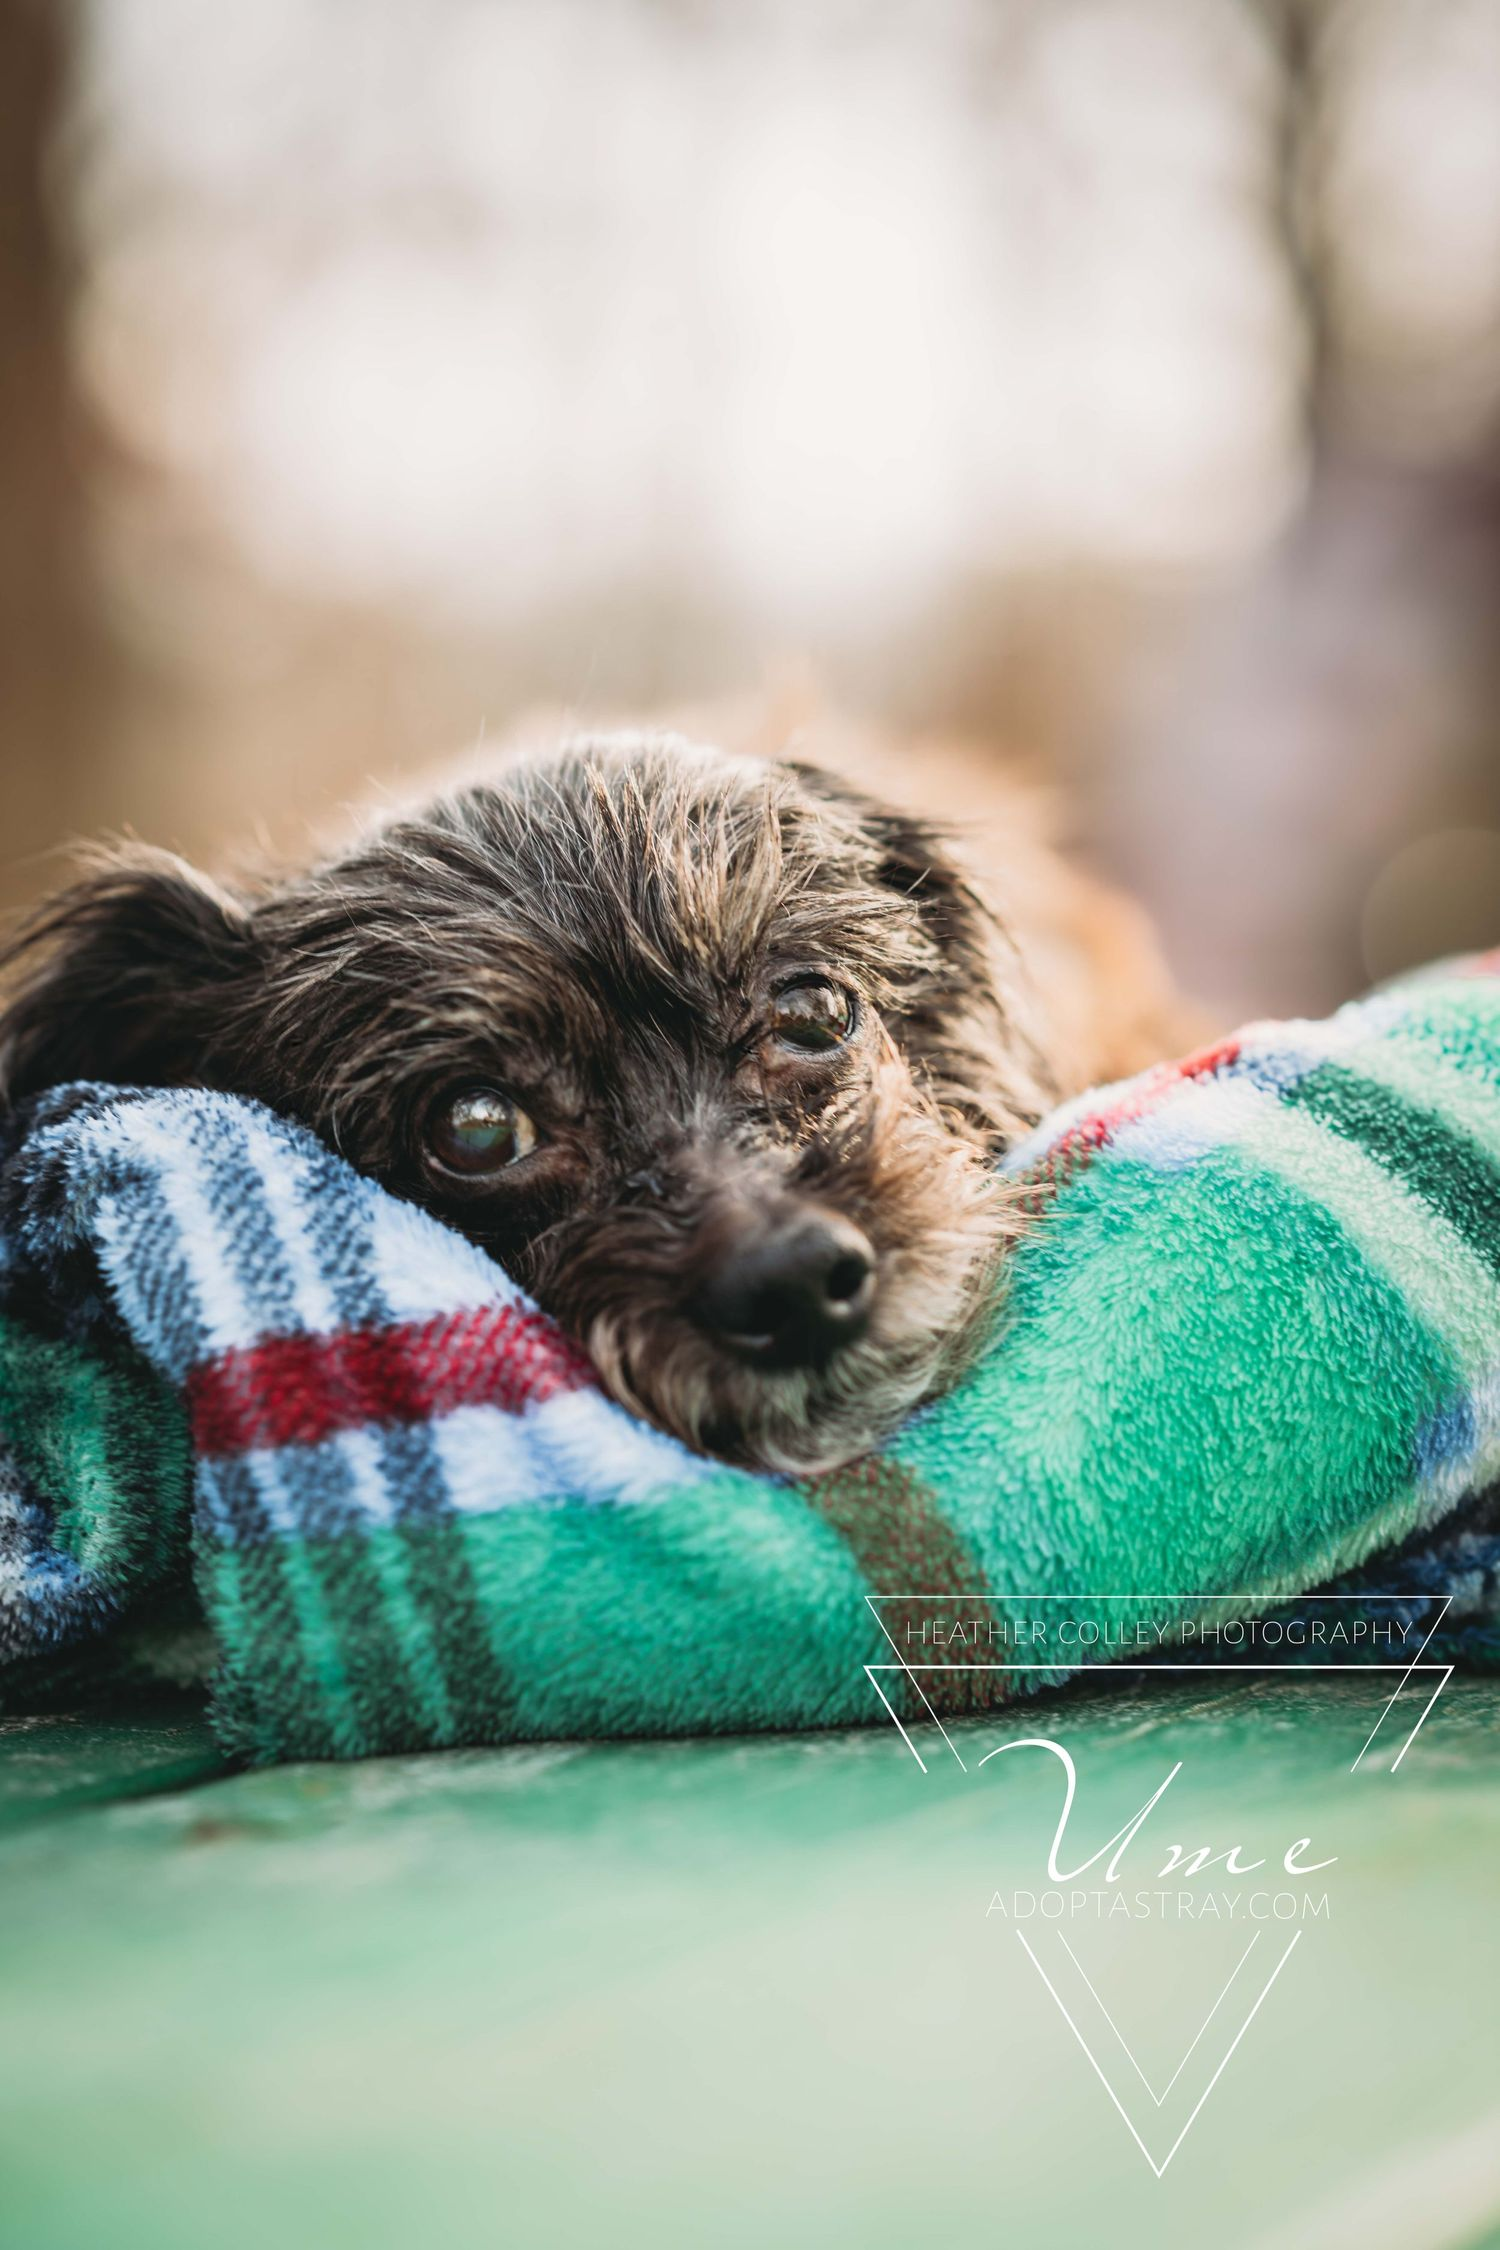 A small old terrier dog lays on a plaid blanket.